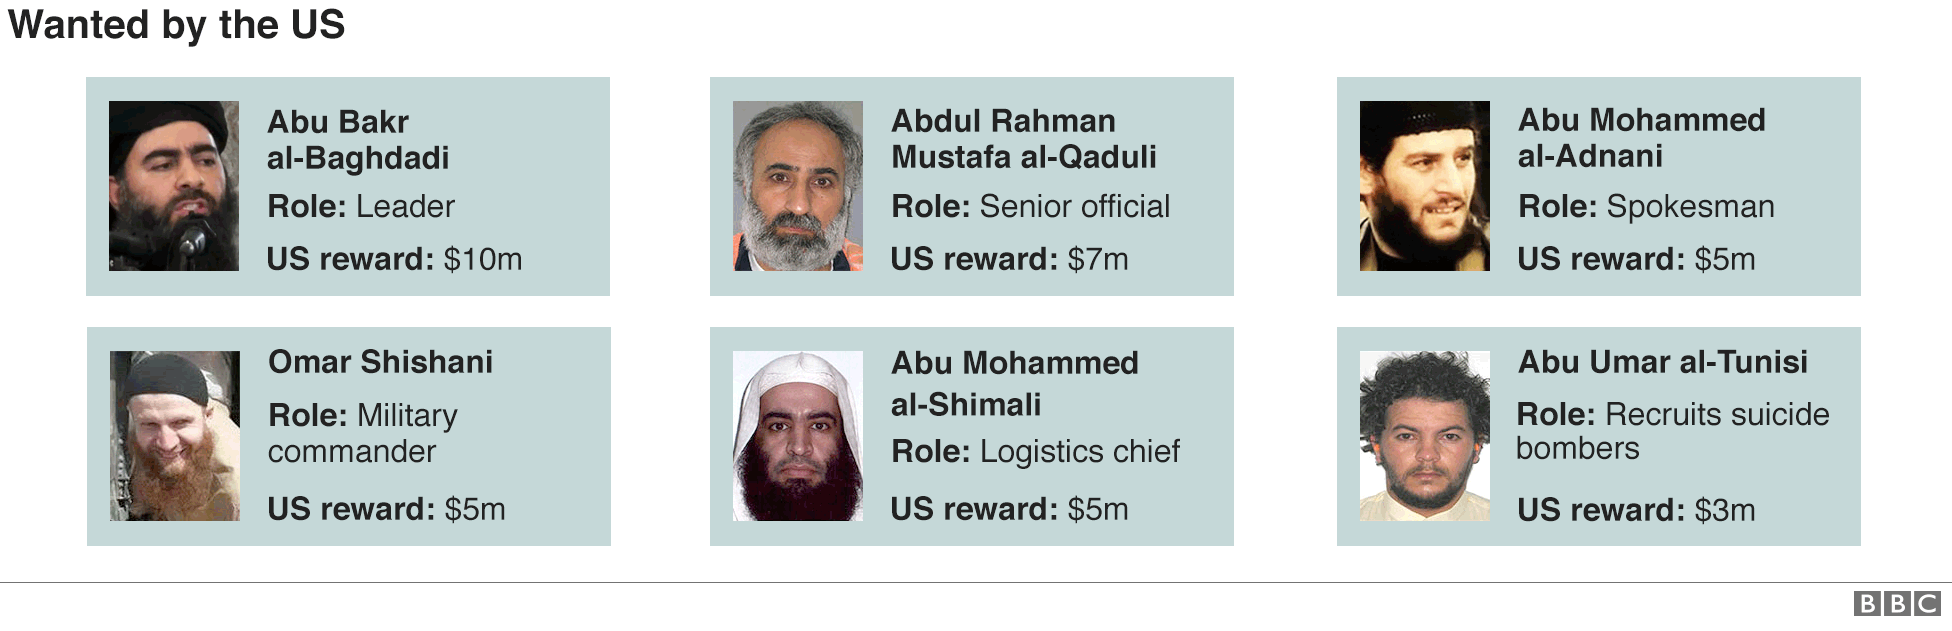 Faces of senior IS officials wanted by the US